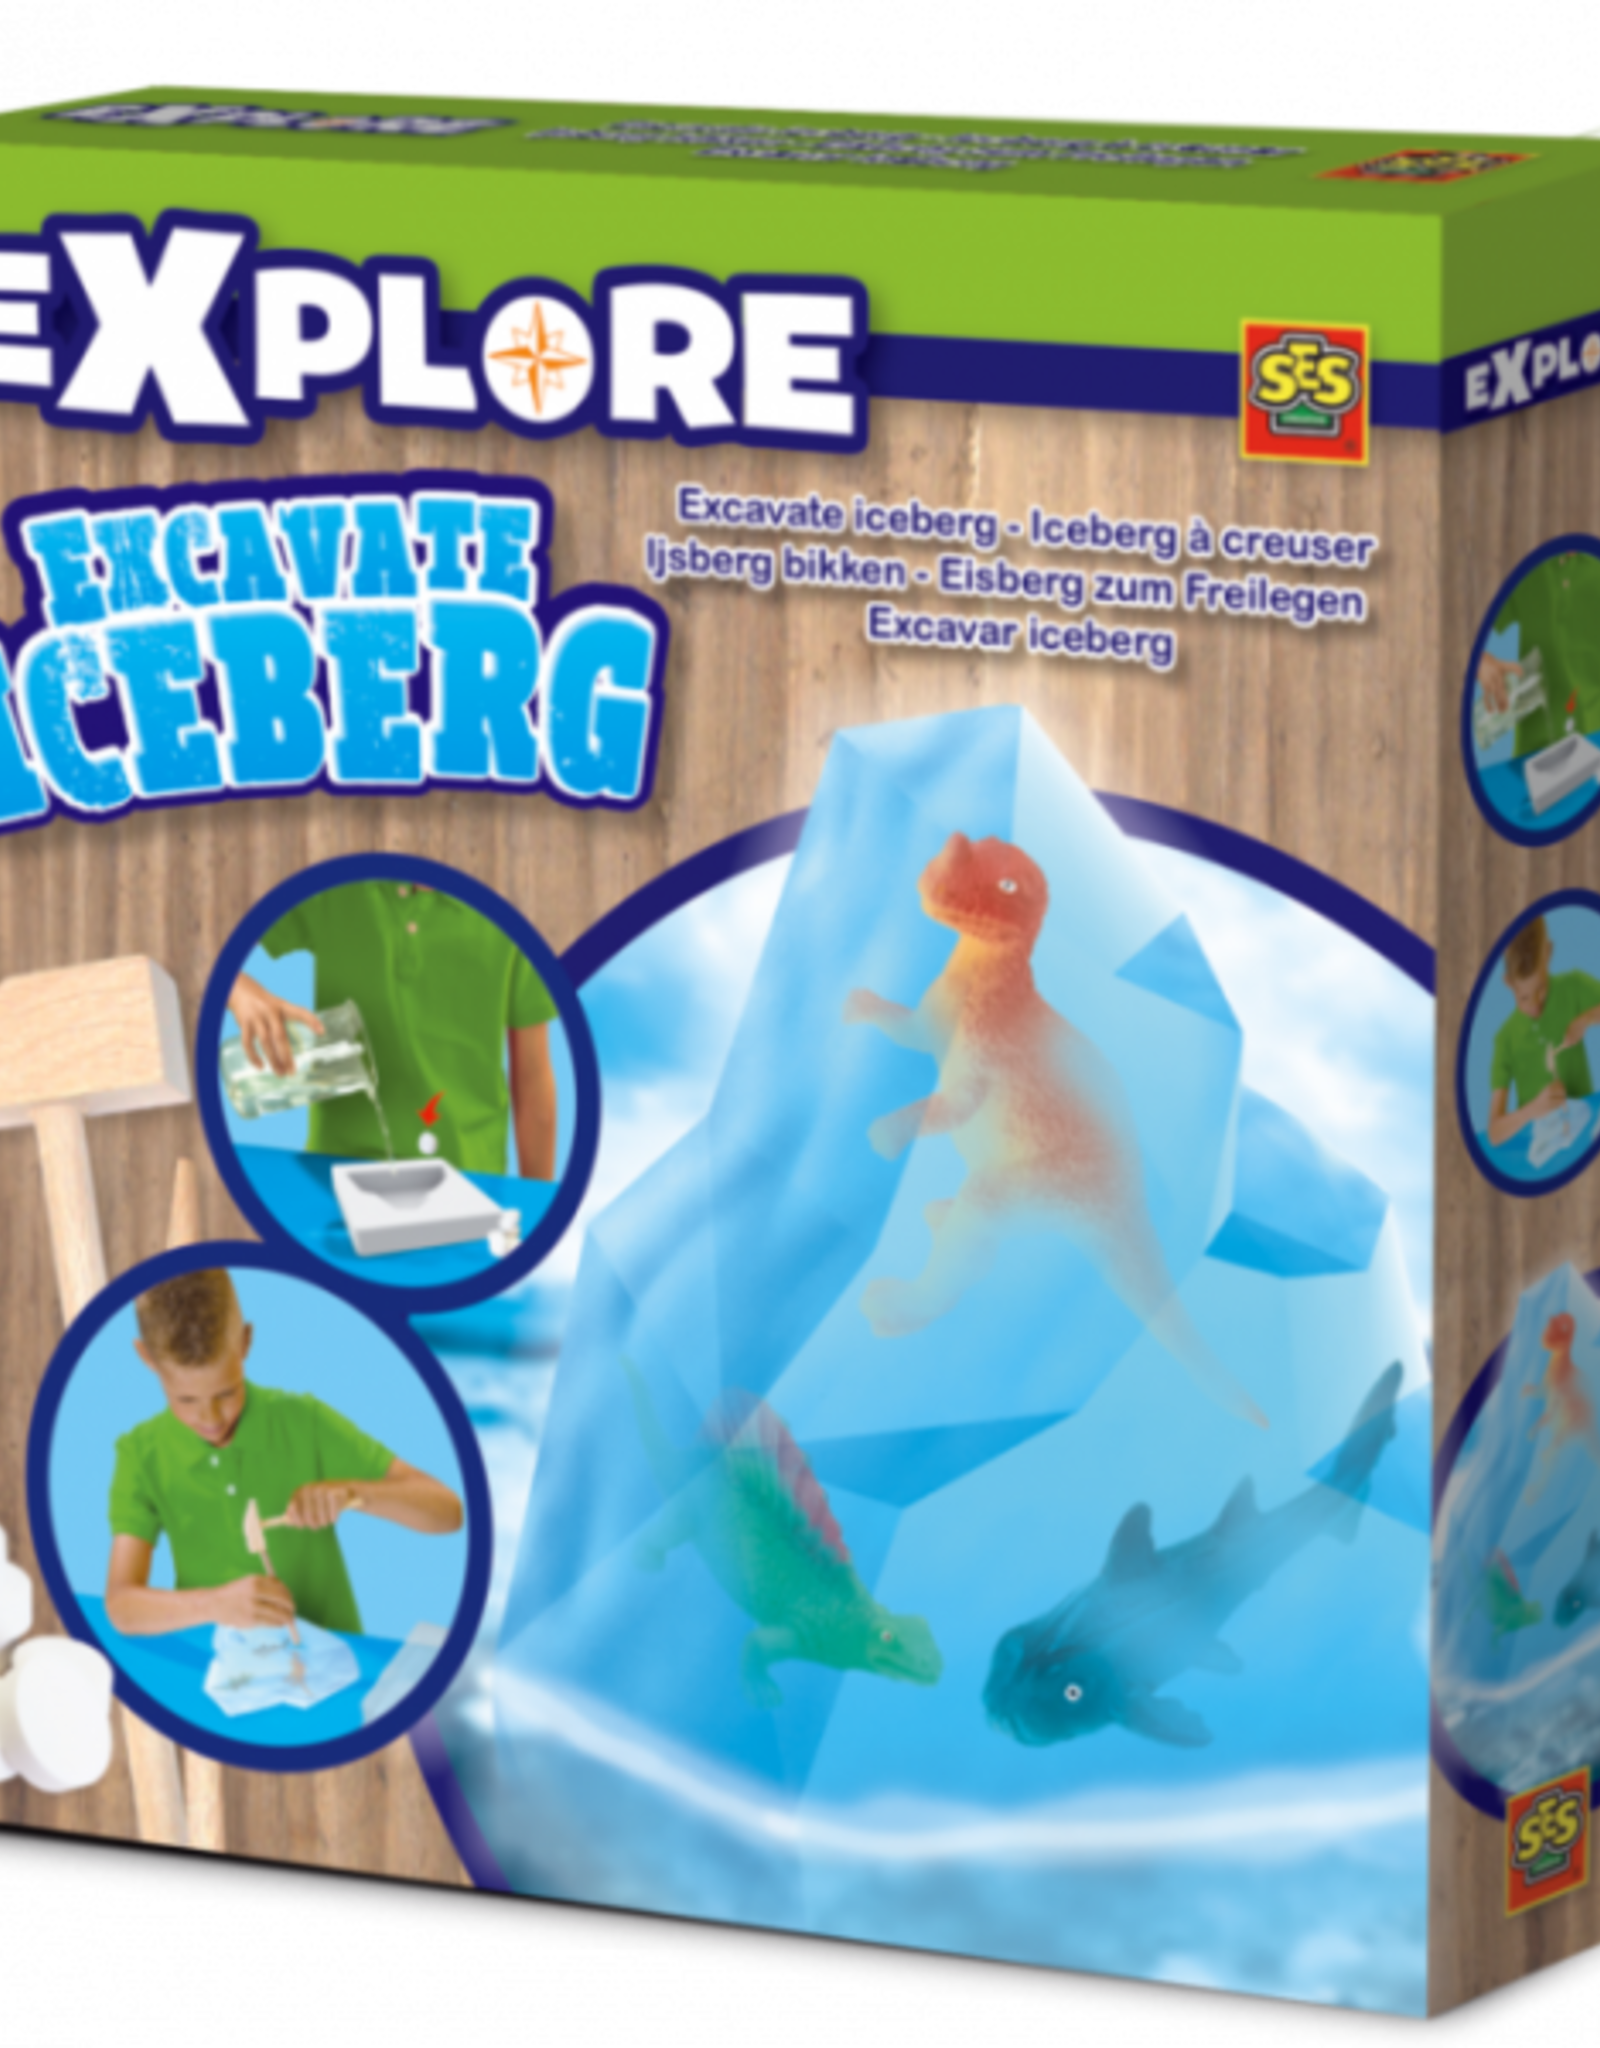 Excavate an Iceberg